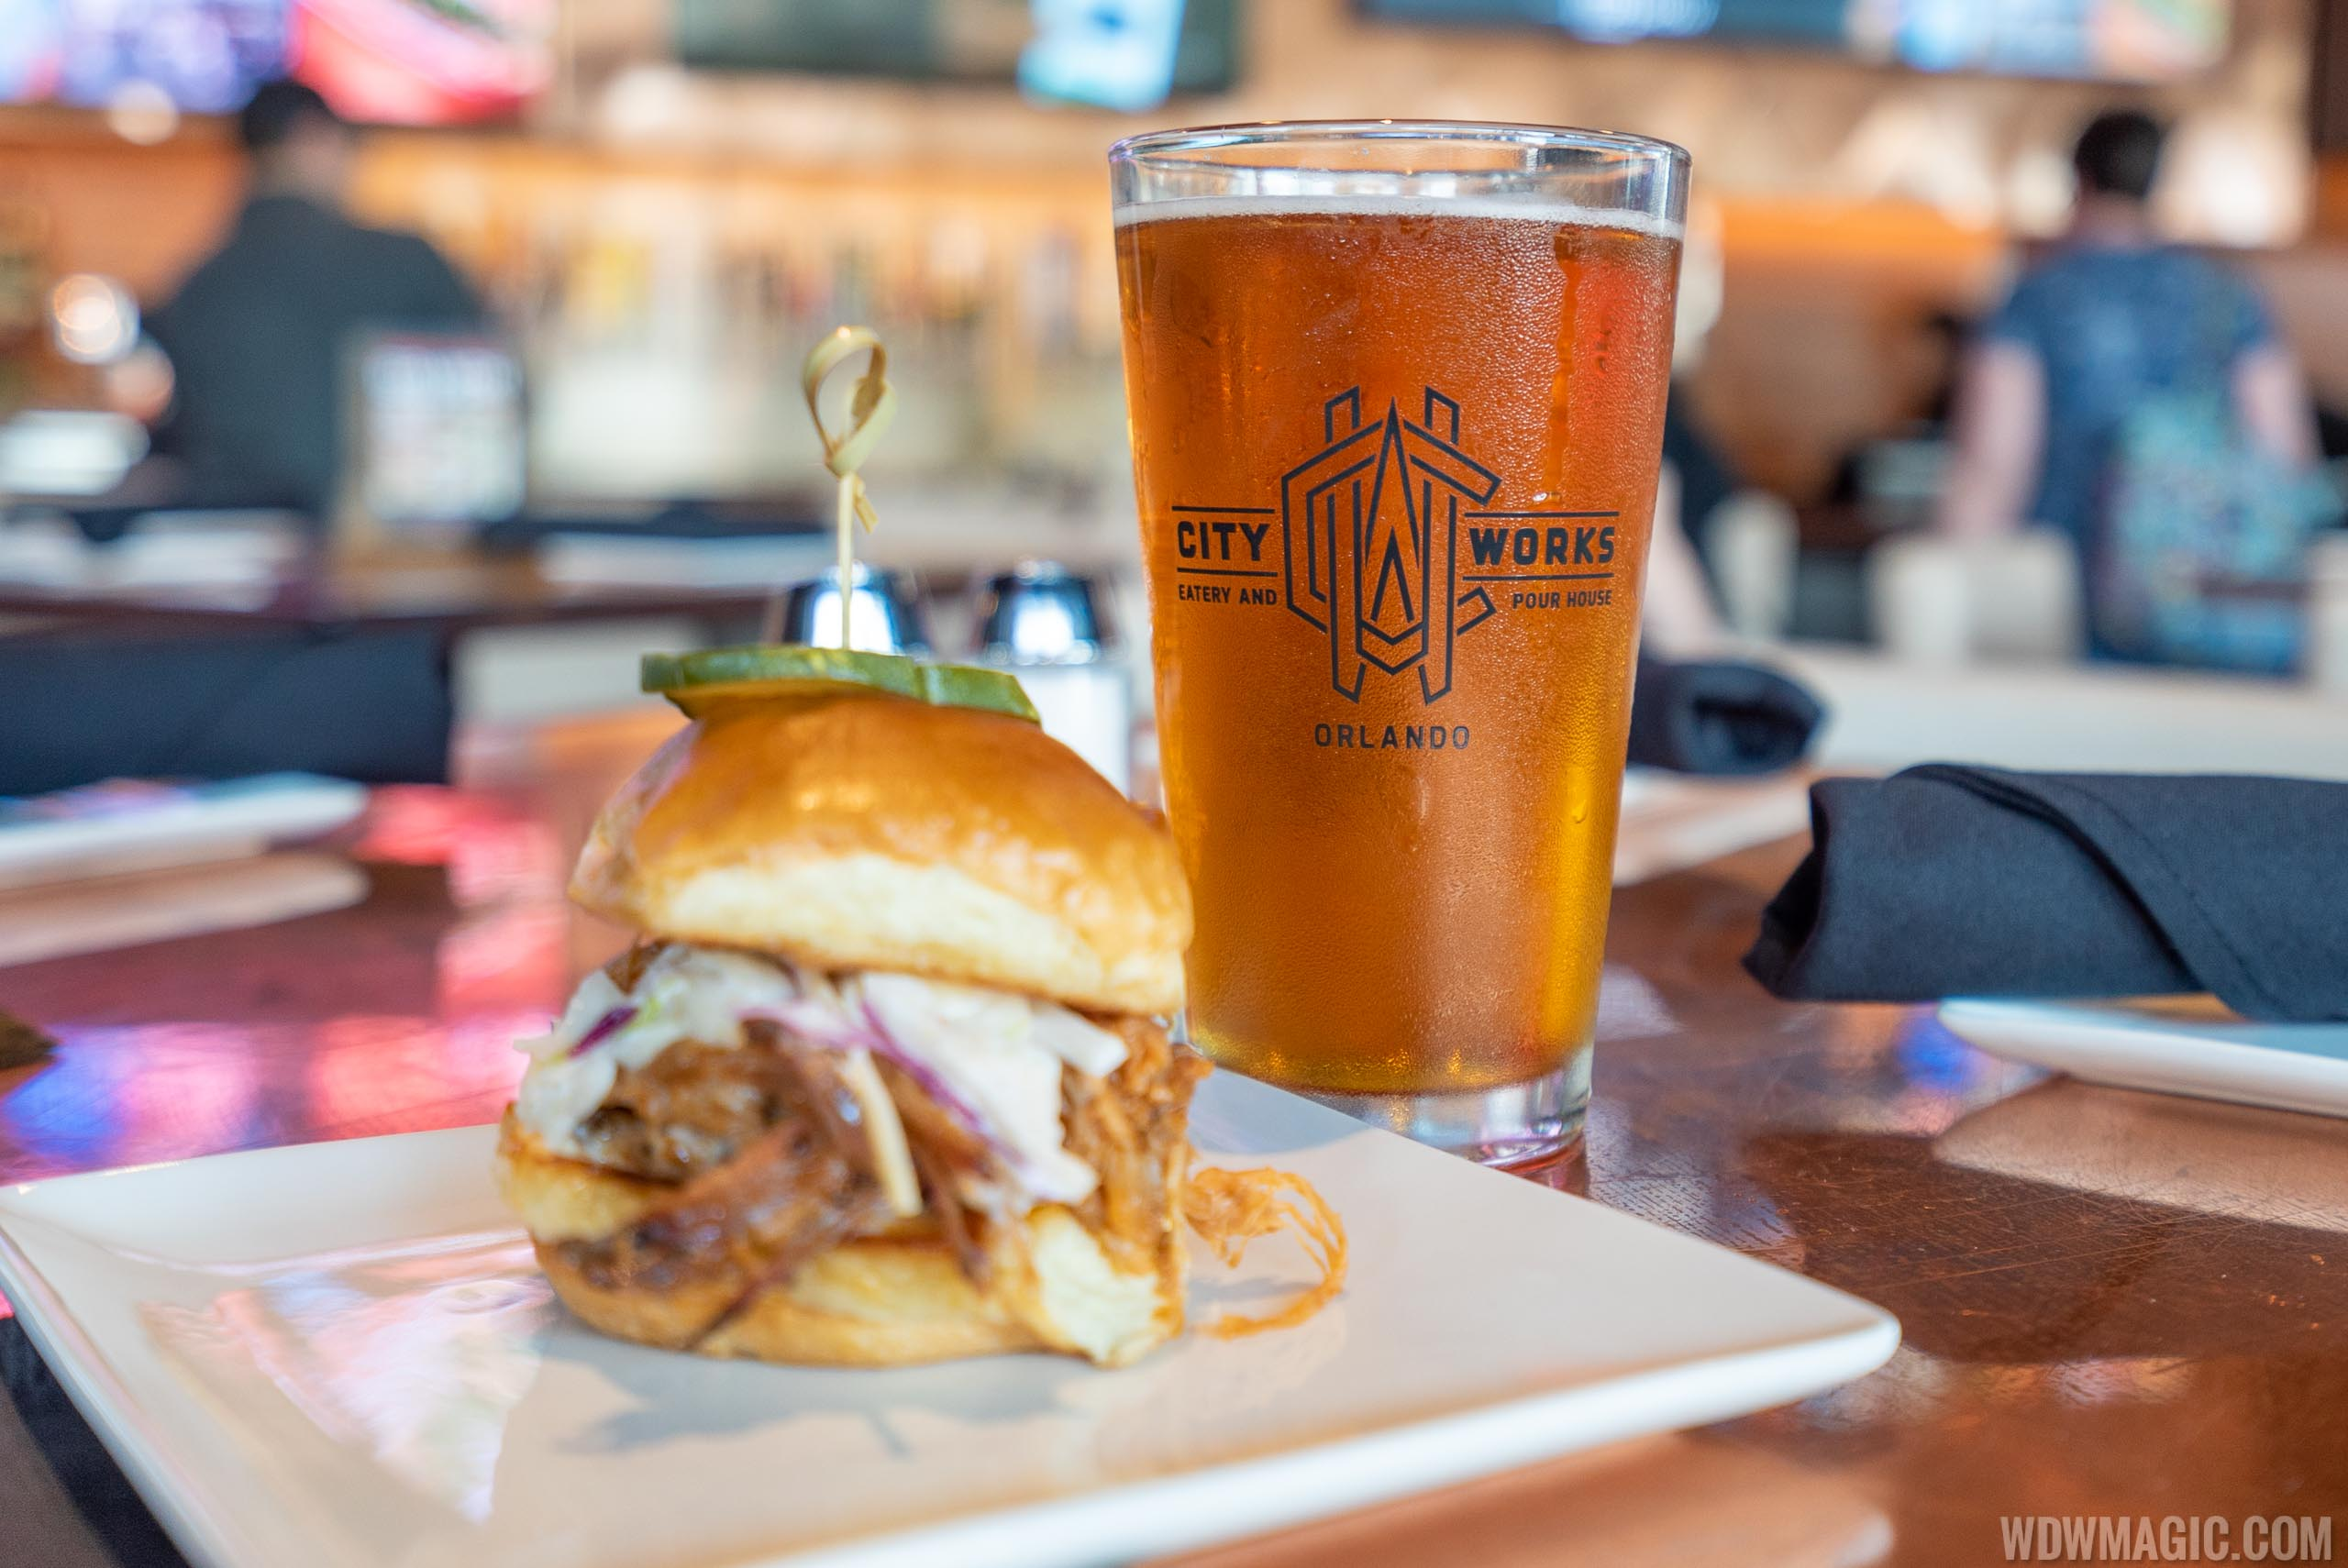 City Works Eatery and Pour House Disney Springs food and drink